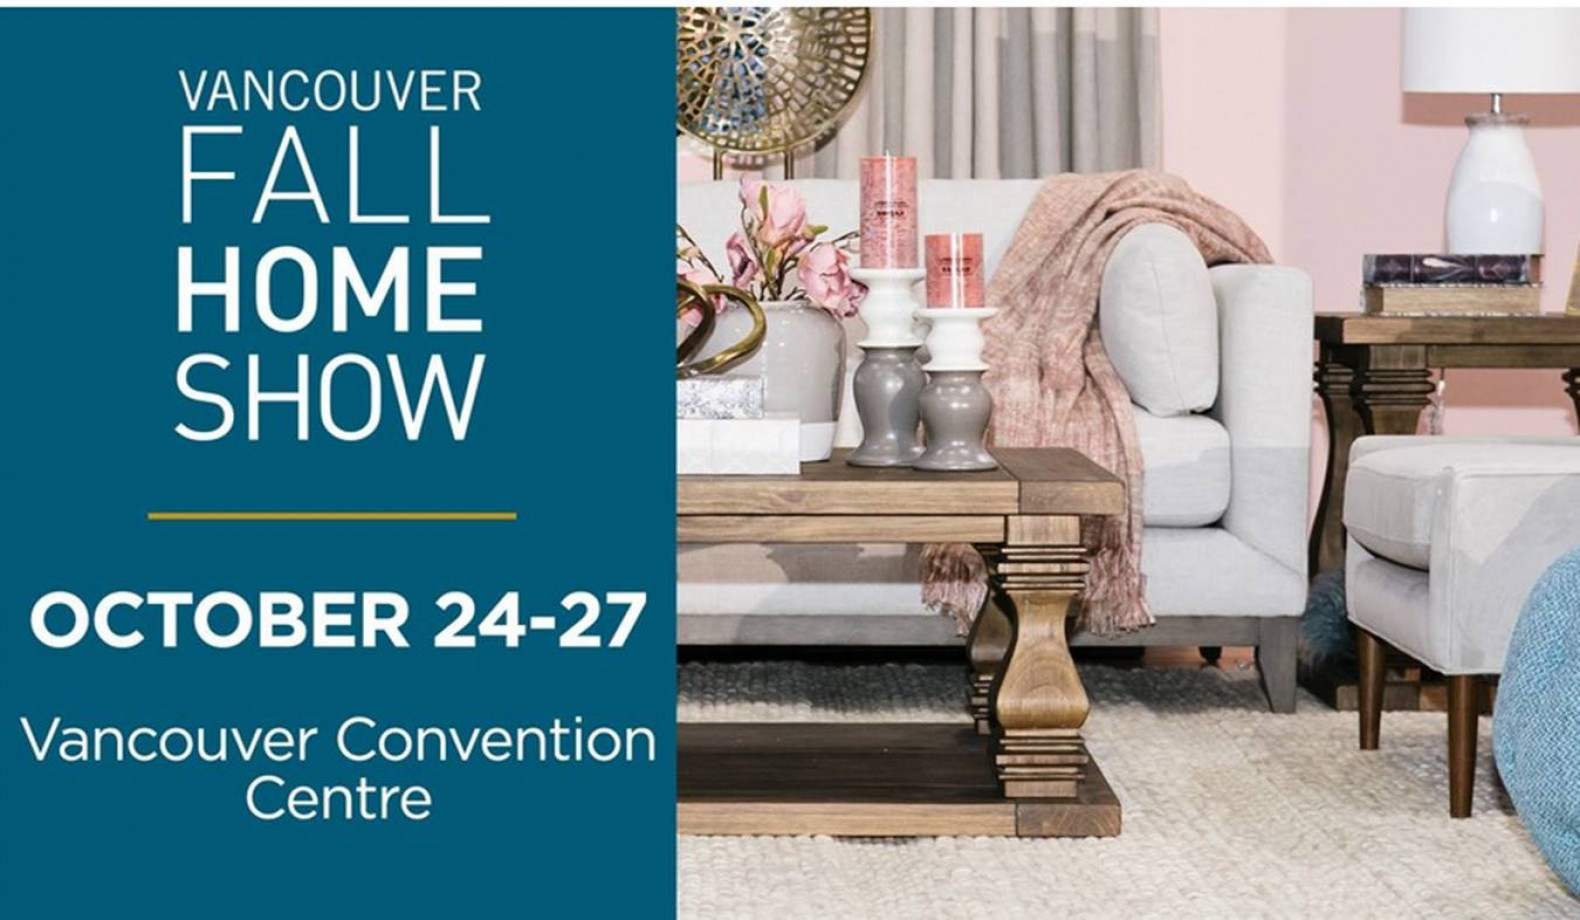 Lumon Canada, Vancouver Fall Home Show, Sunrooms Vancouver, Retractable Glass Walls